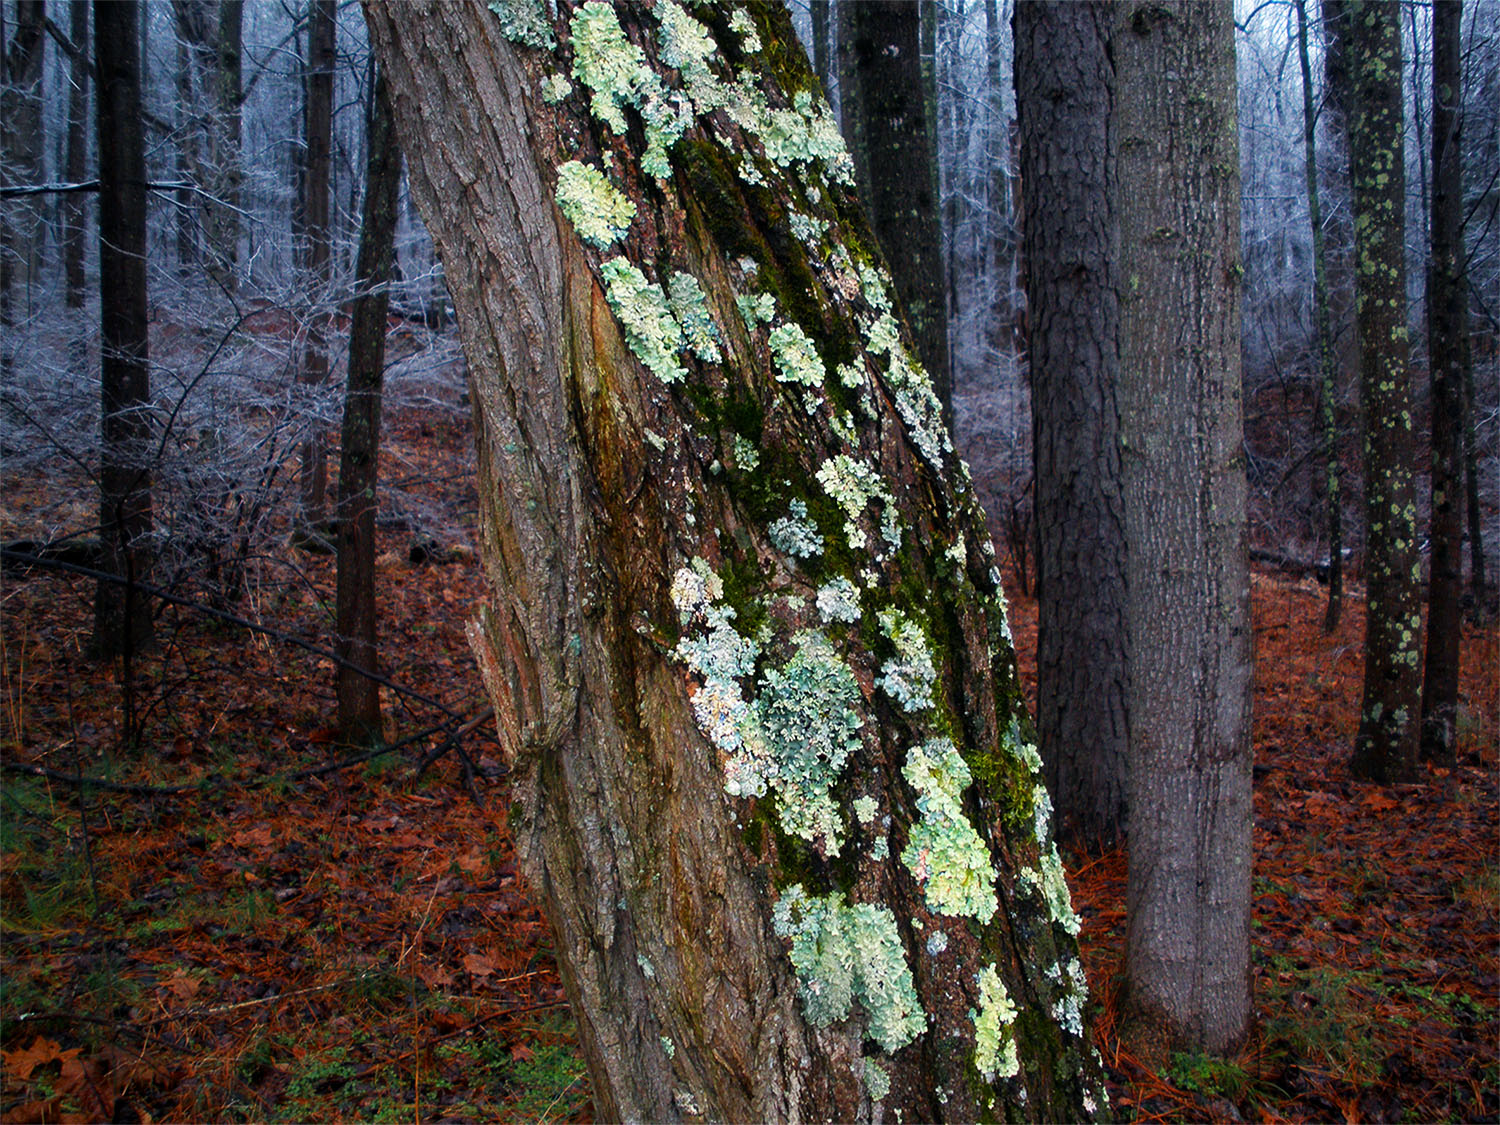 22. of ice and lichen, by k. bos